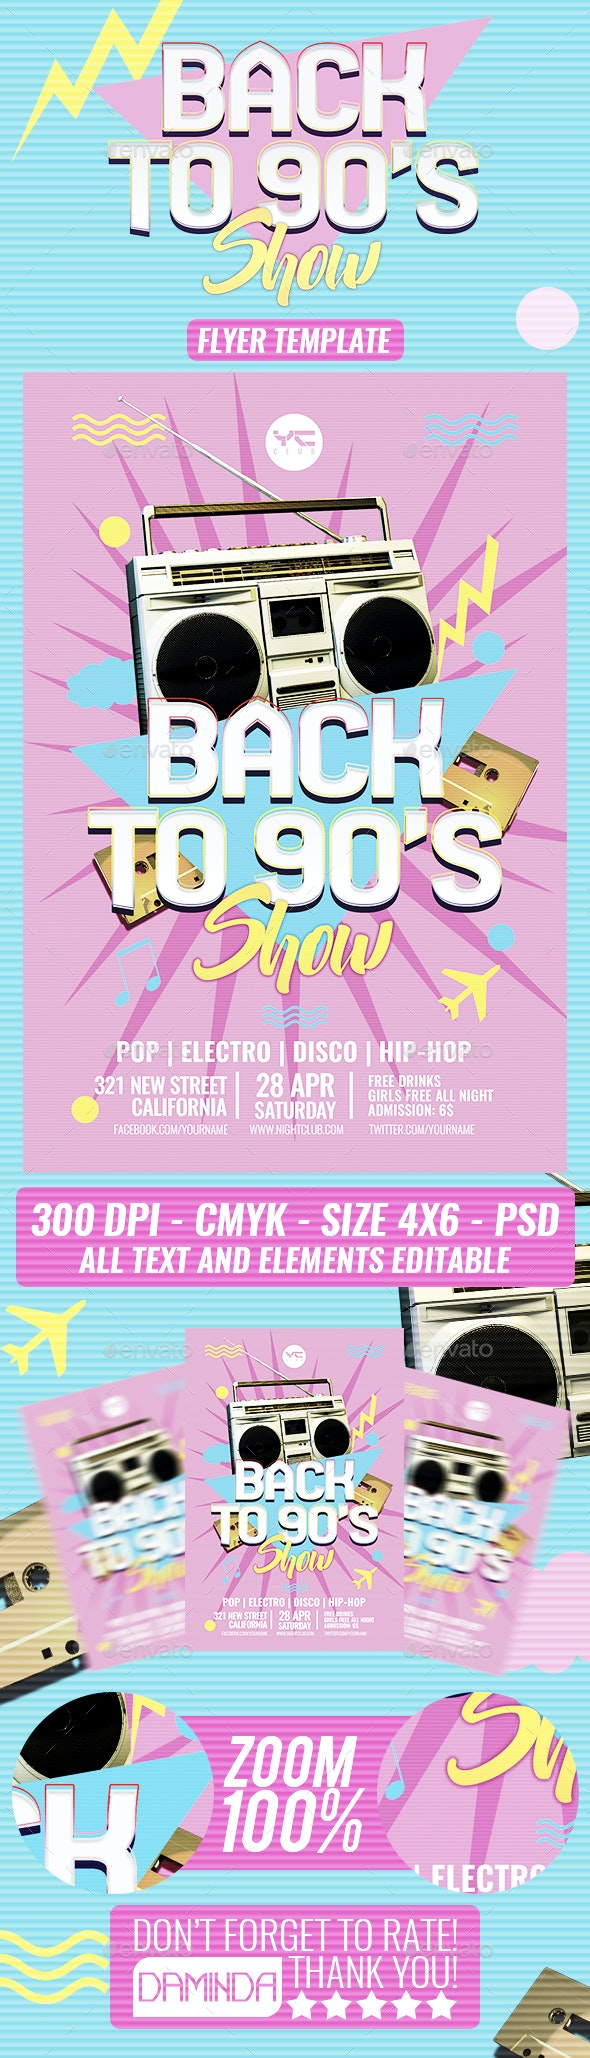 90s Party Flyer Template - Clubs & Parties Events